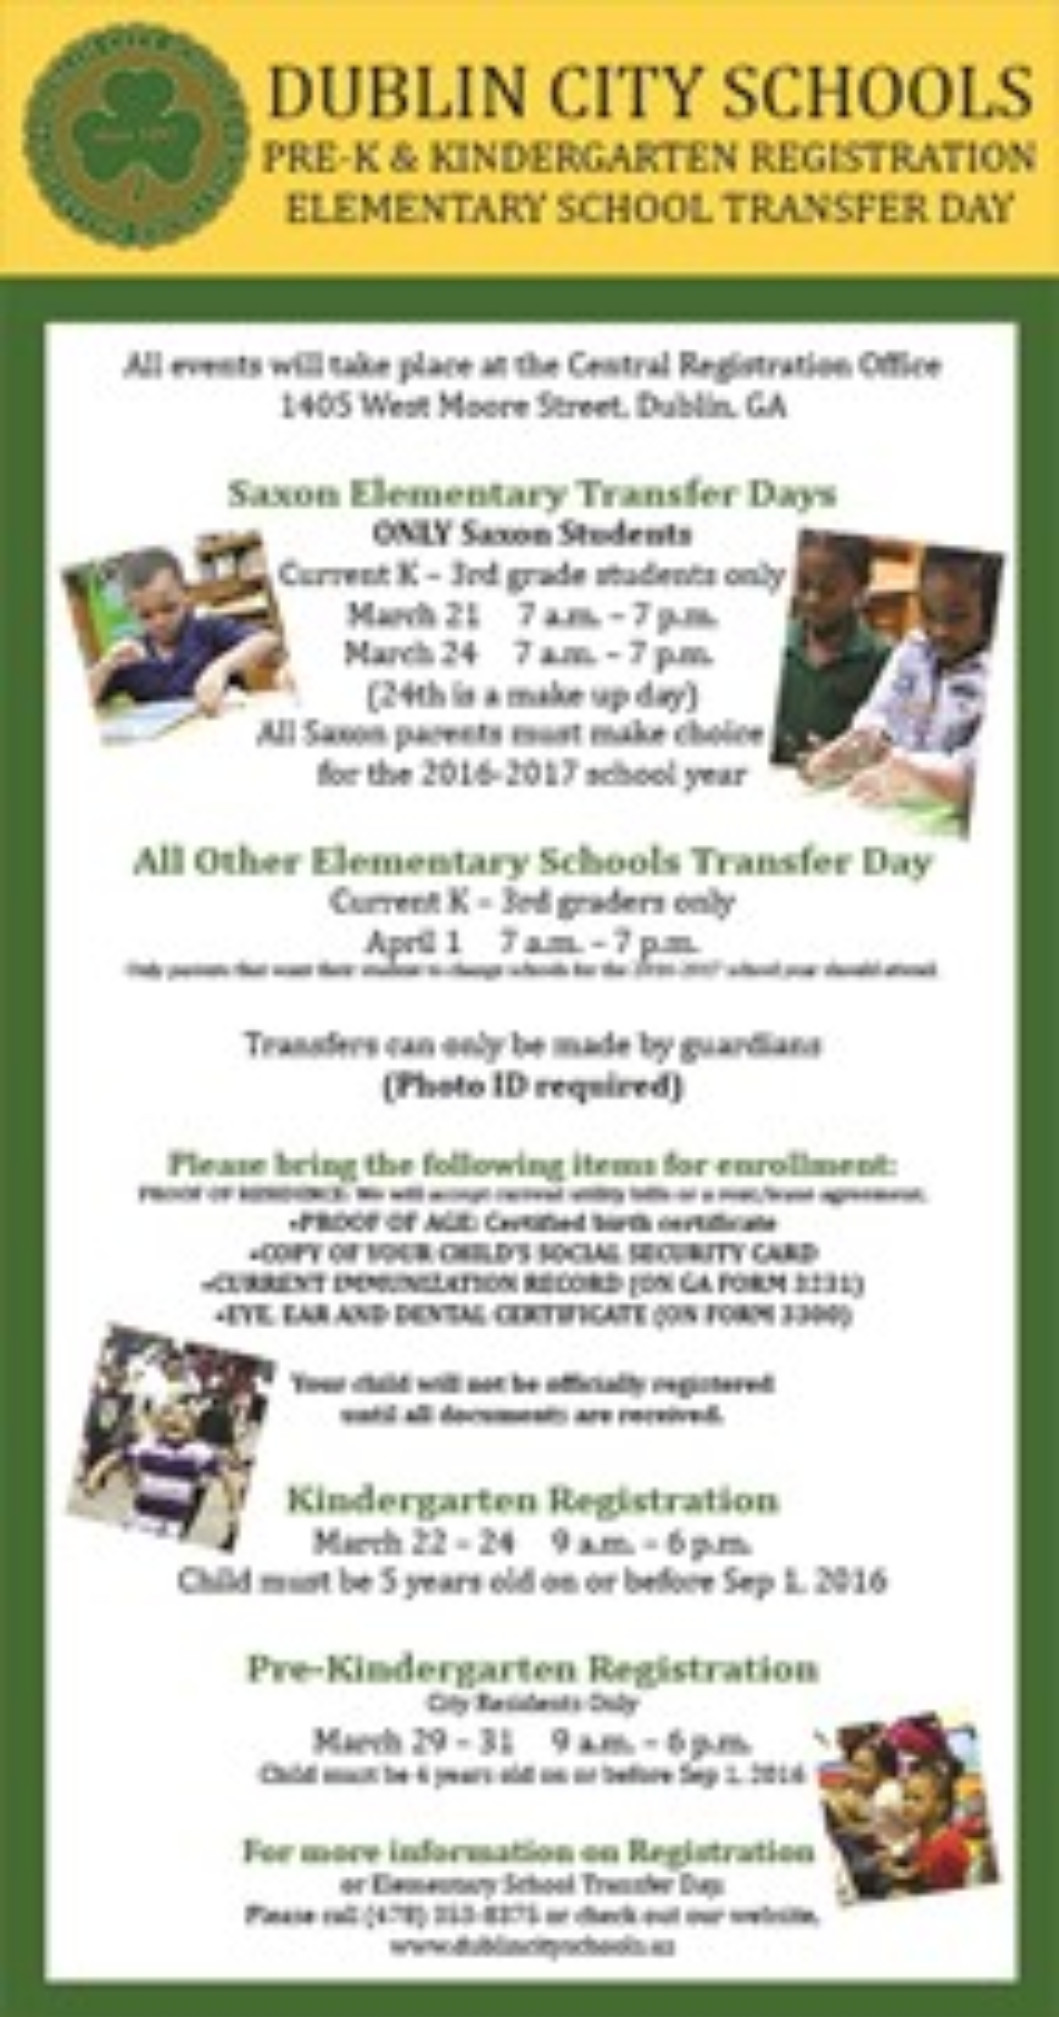 PRE-K & KINDERGARTEN REGISTRATION/ELEMENTARY TRANSFER DAY